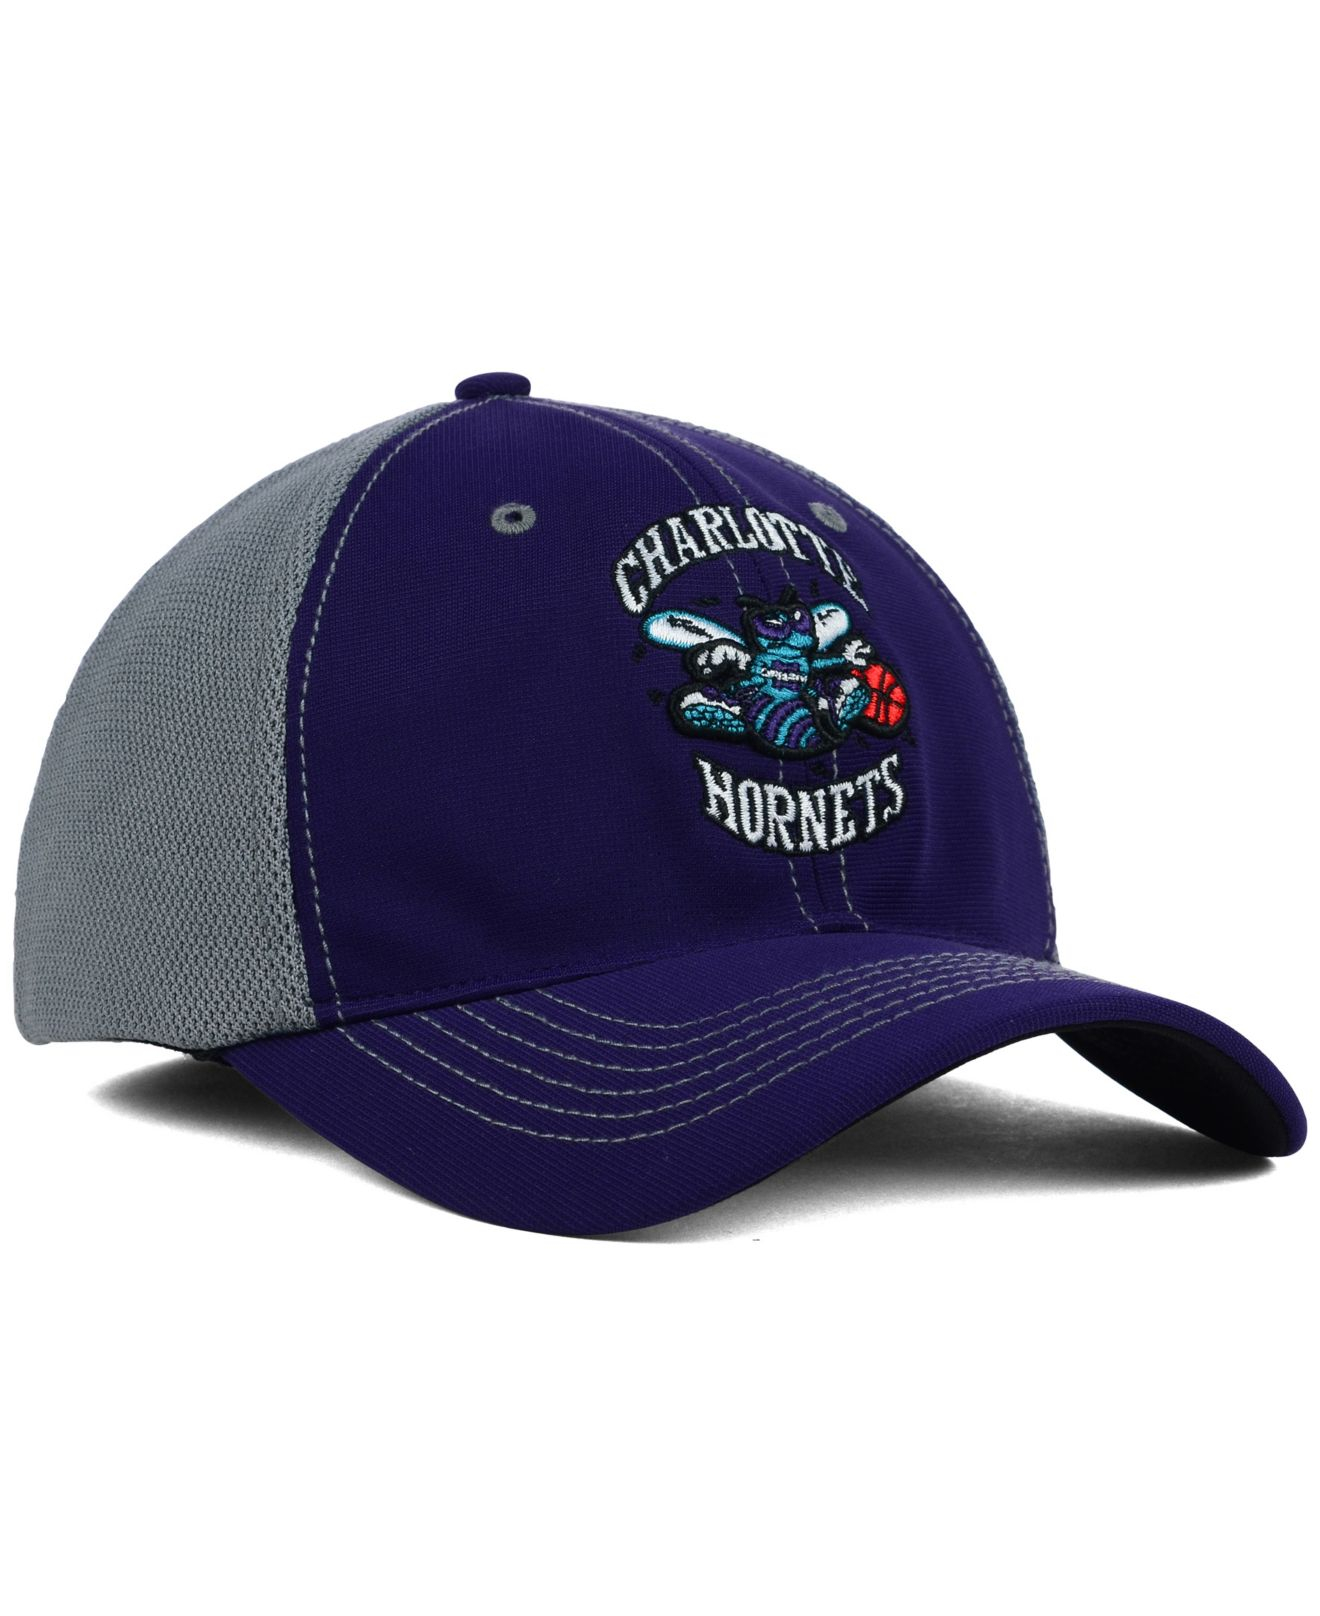 ... canada lyst 47 brand charlotte hornets reversal team color 47 closer  cap baba9 131dc dc920042778a